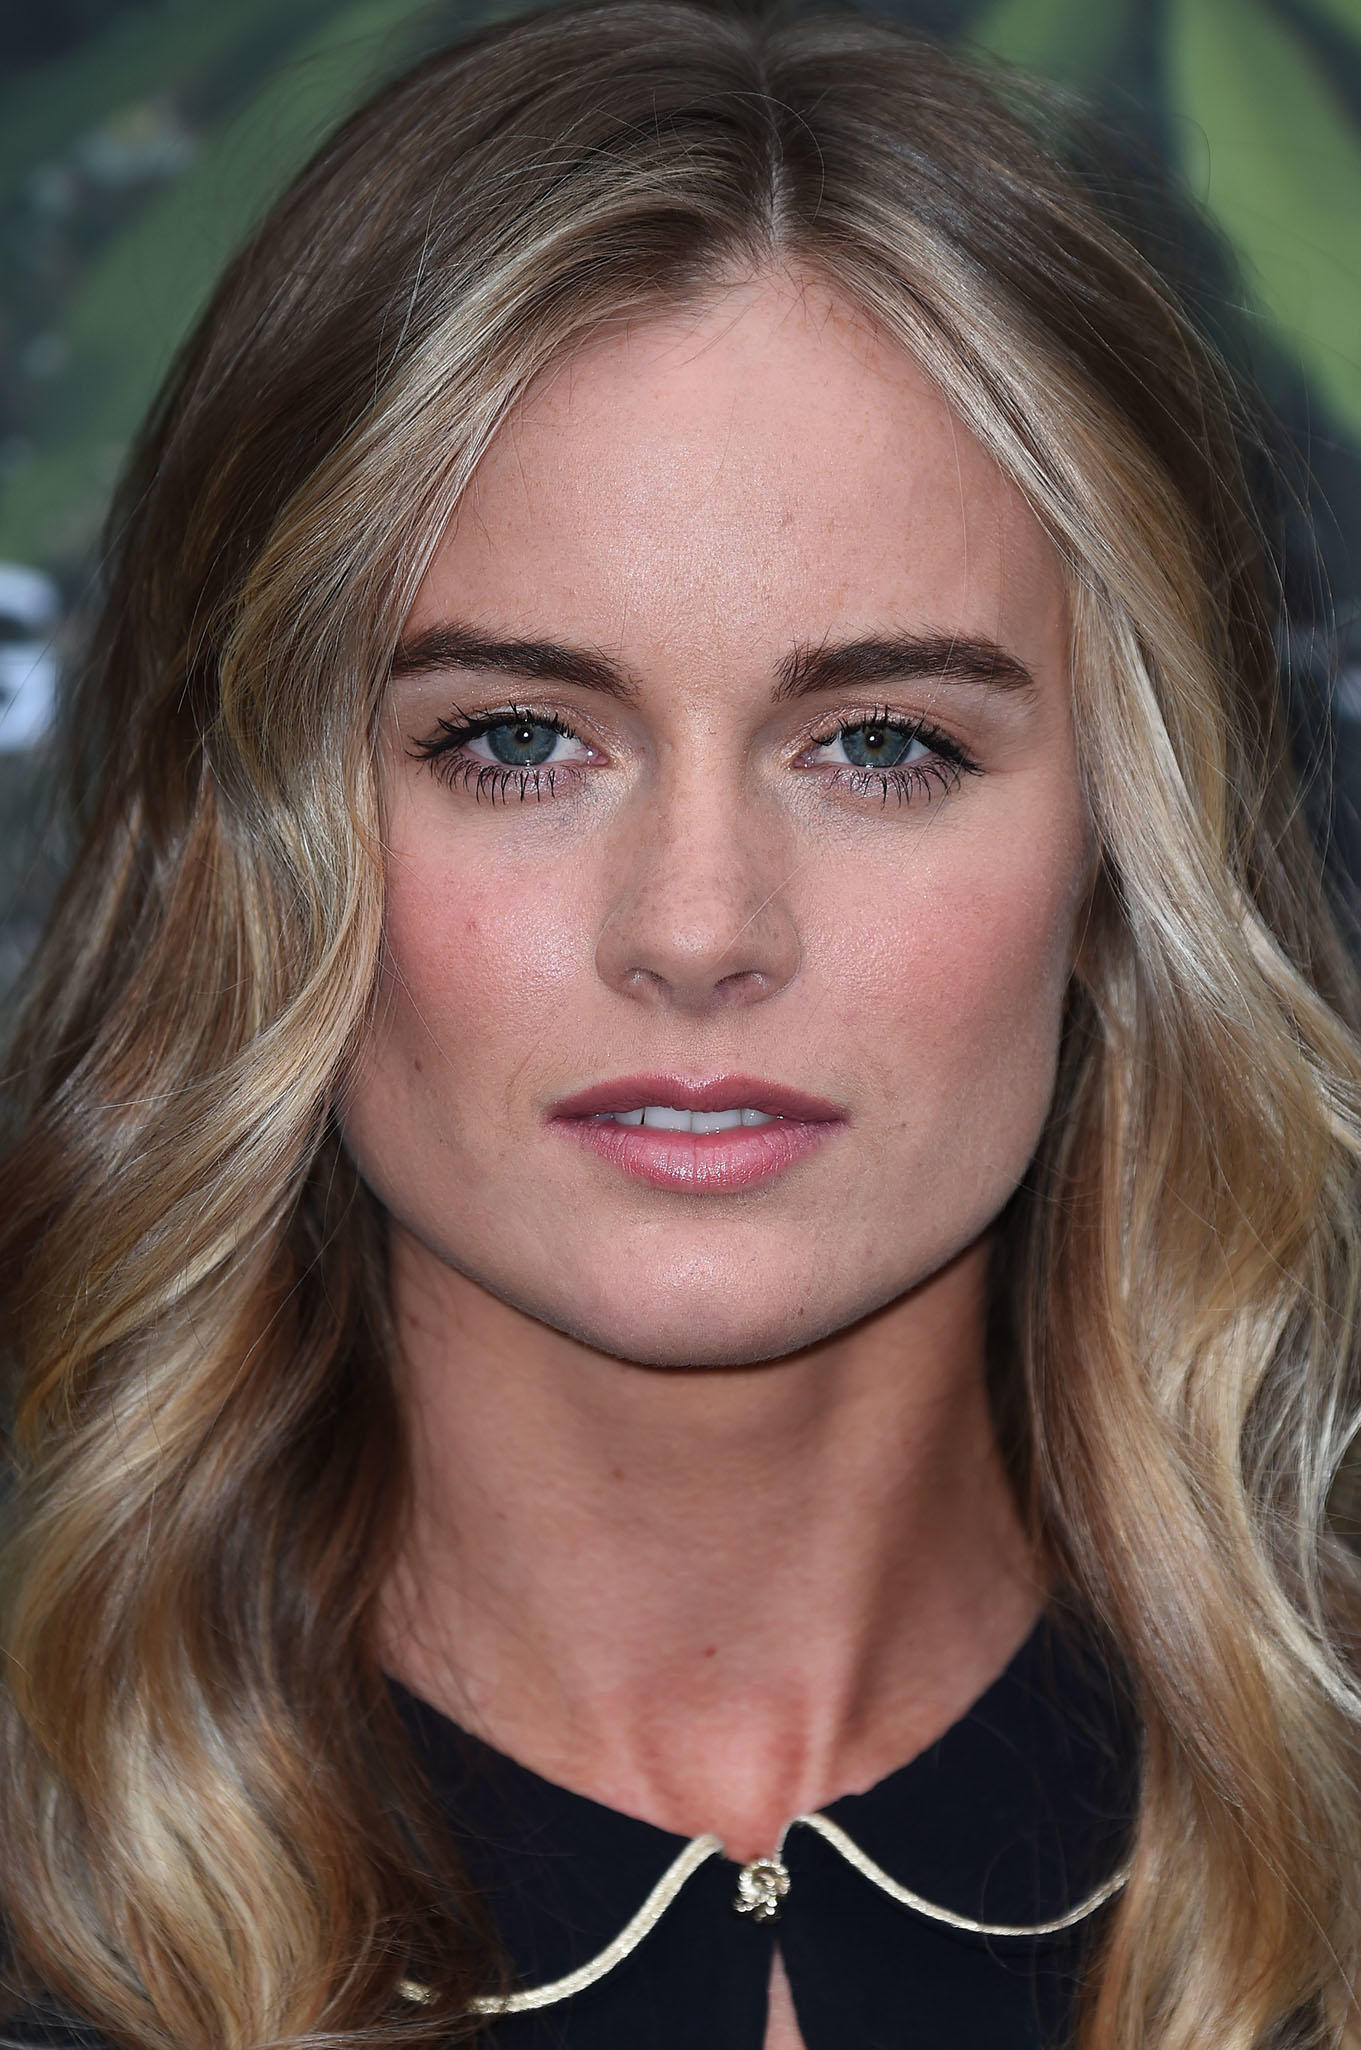 Cressida Bonas at the Serpentine Summer Party in London.